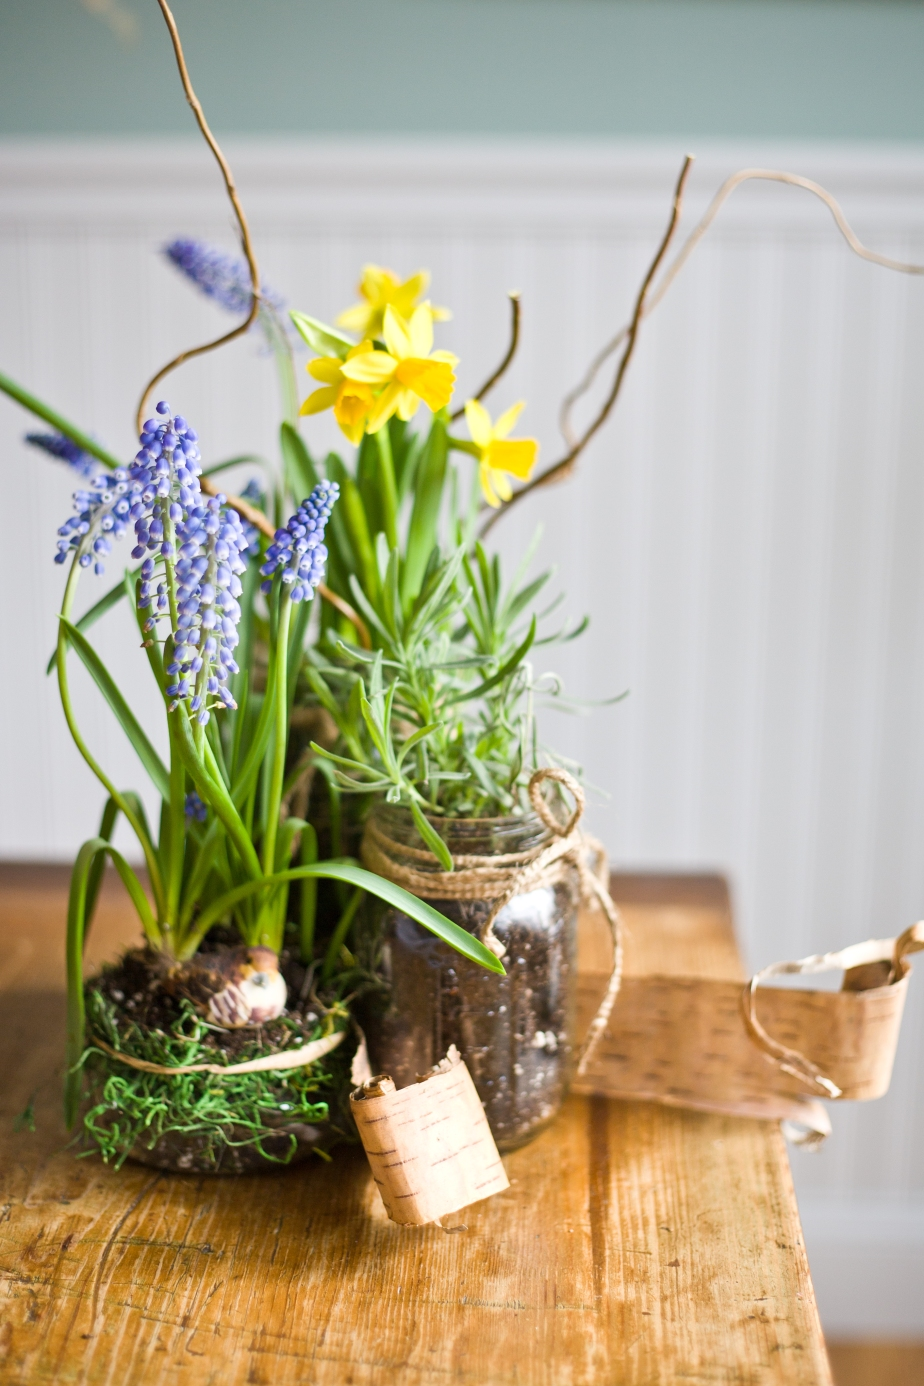 Winter Outside Bringing You Down? Indoor Spring Container Gardens Can Change That!